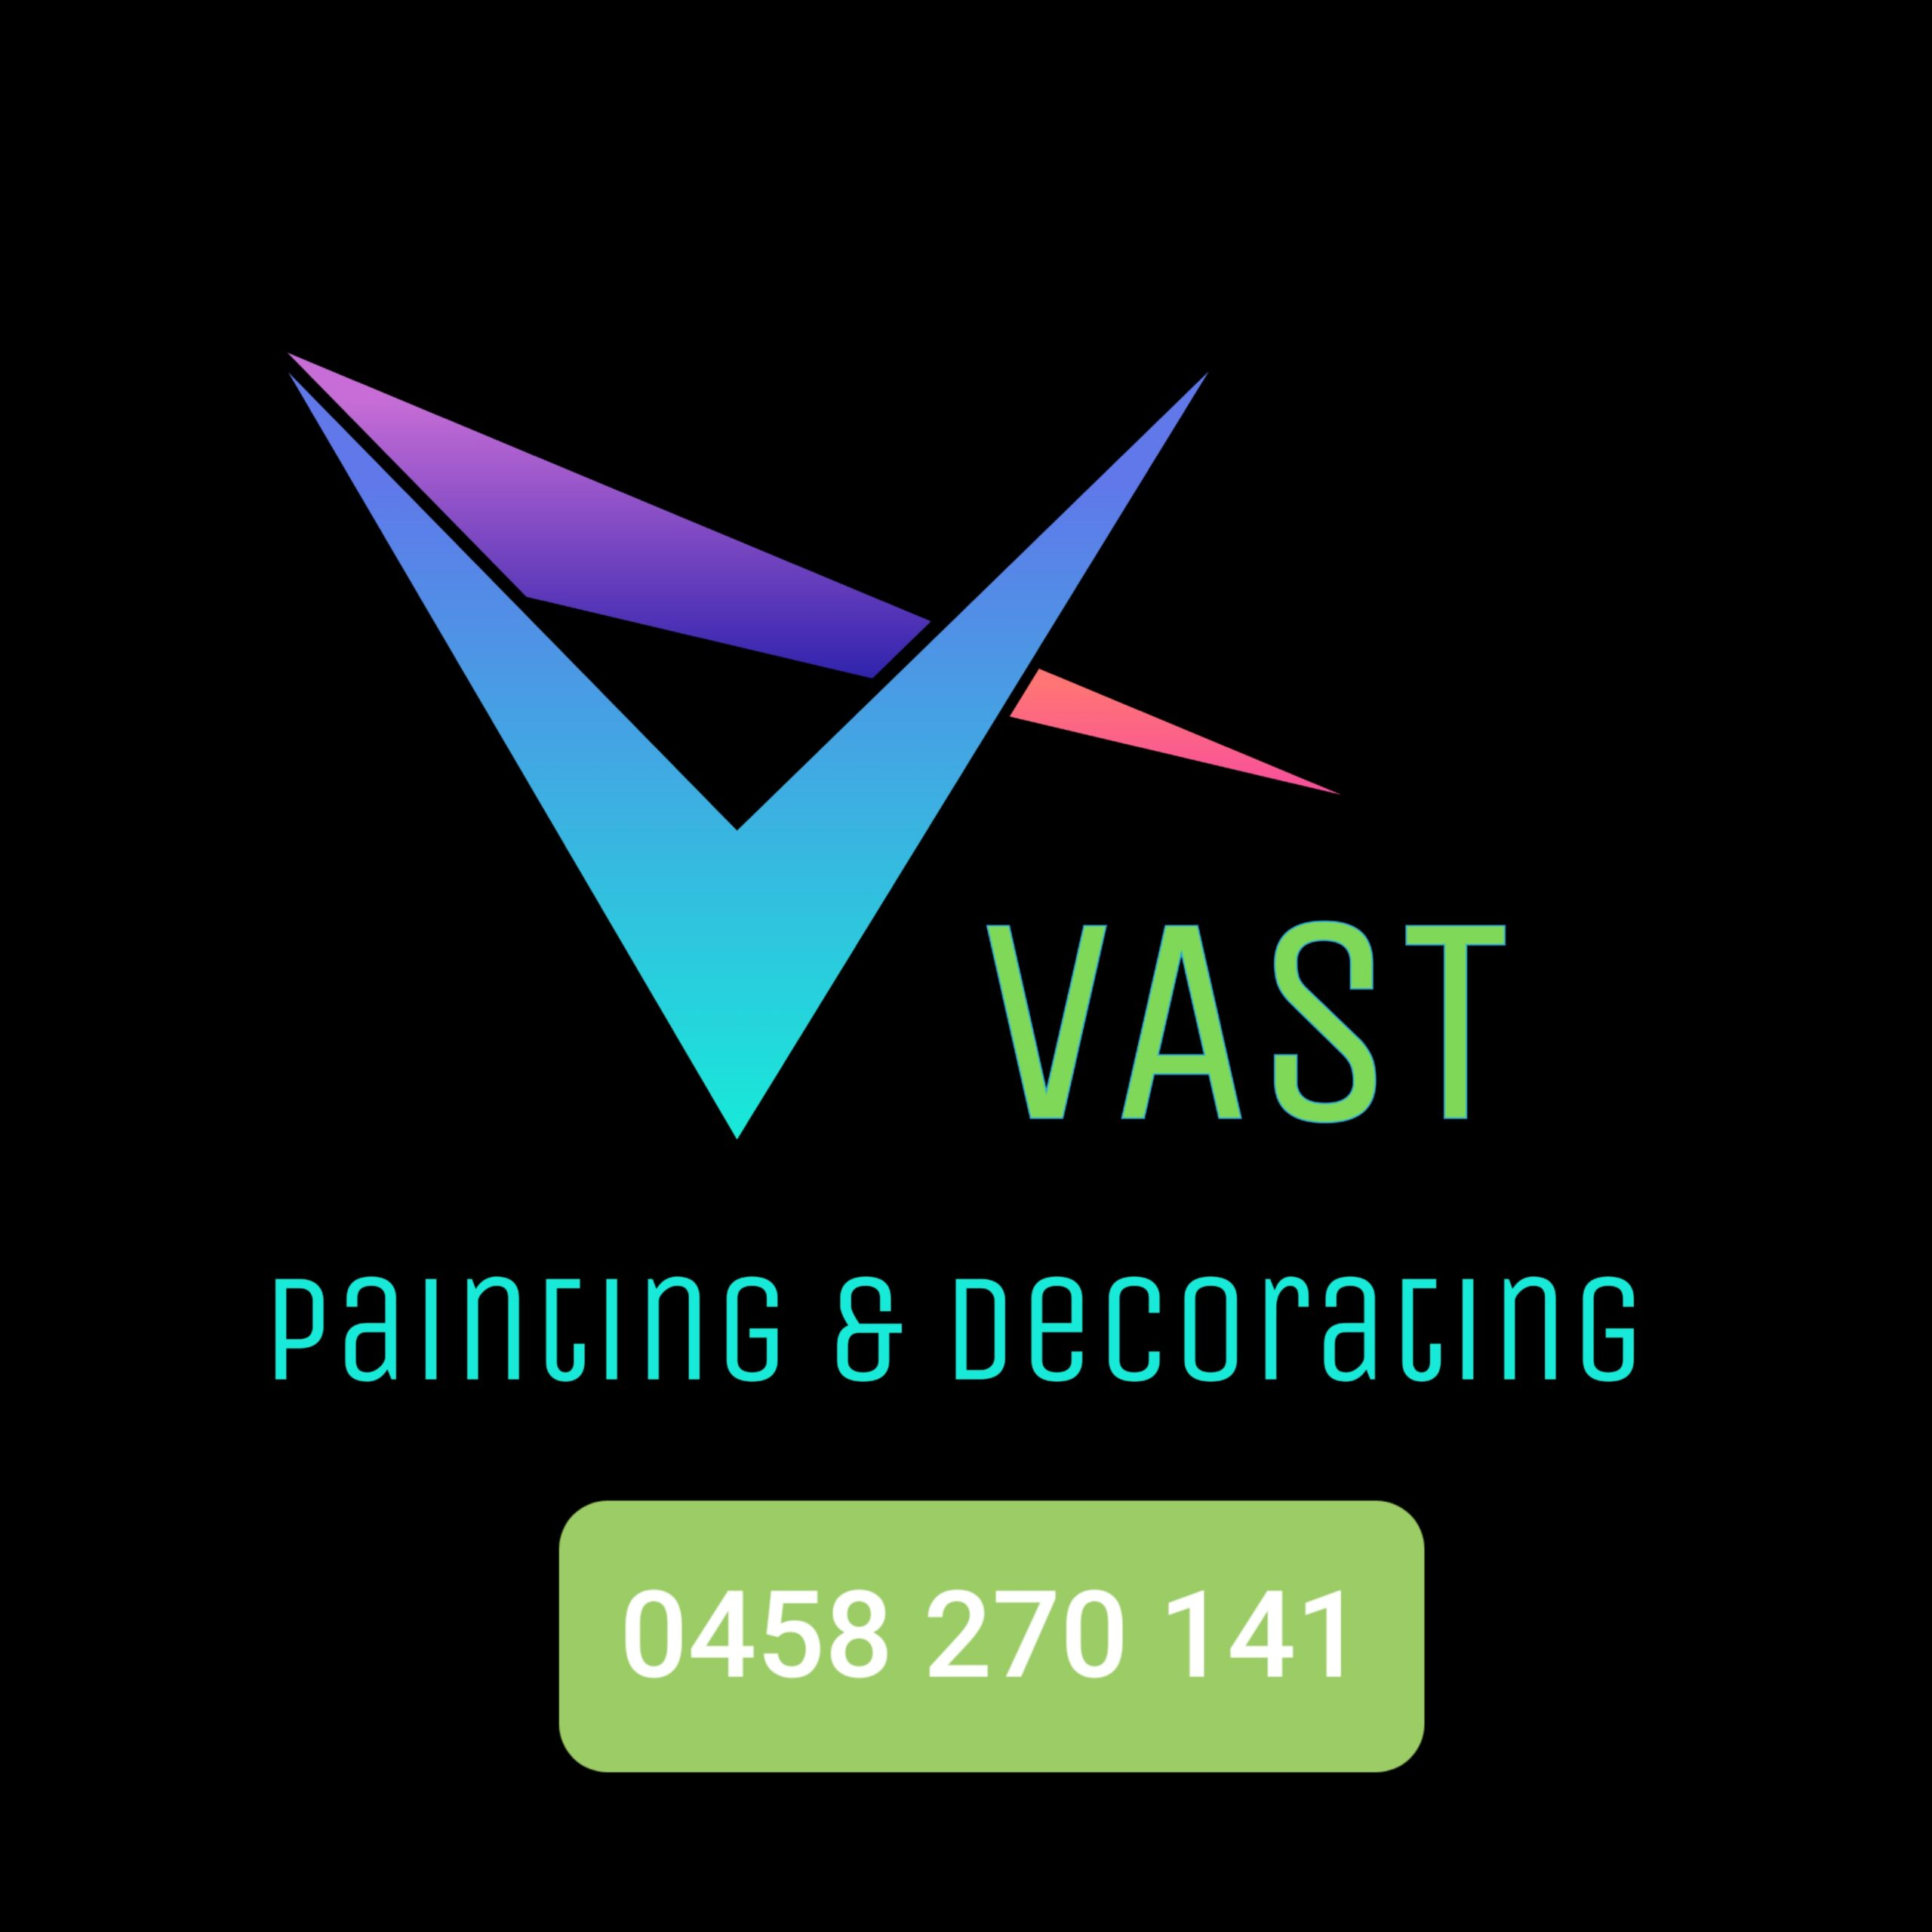 VAST Painting & Decorating